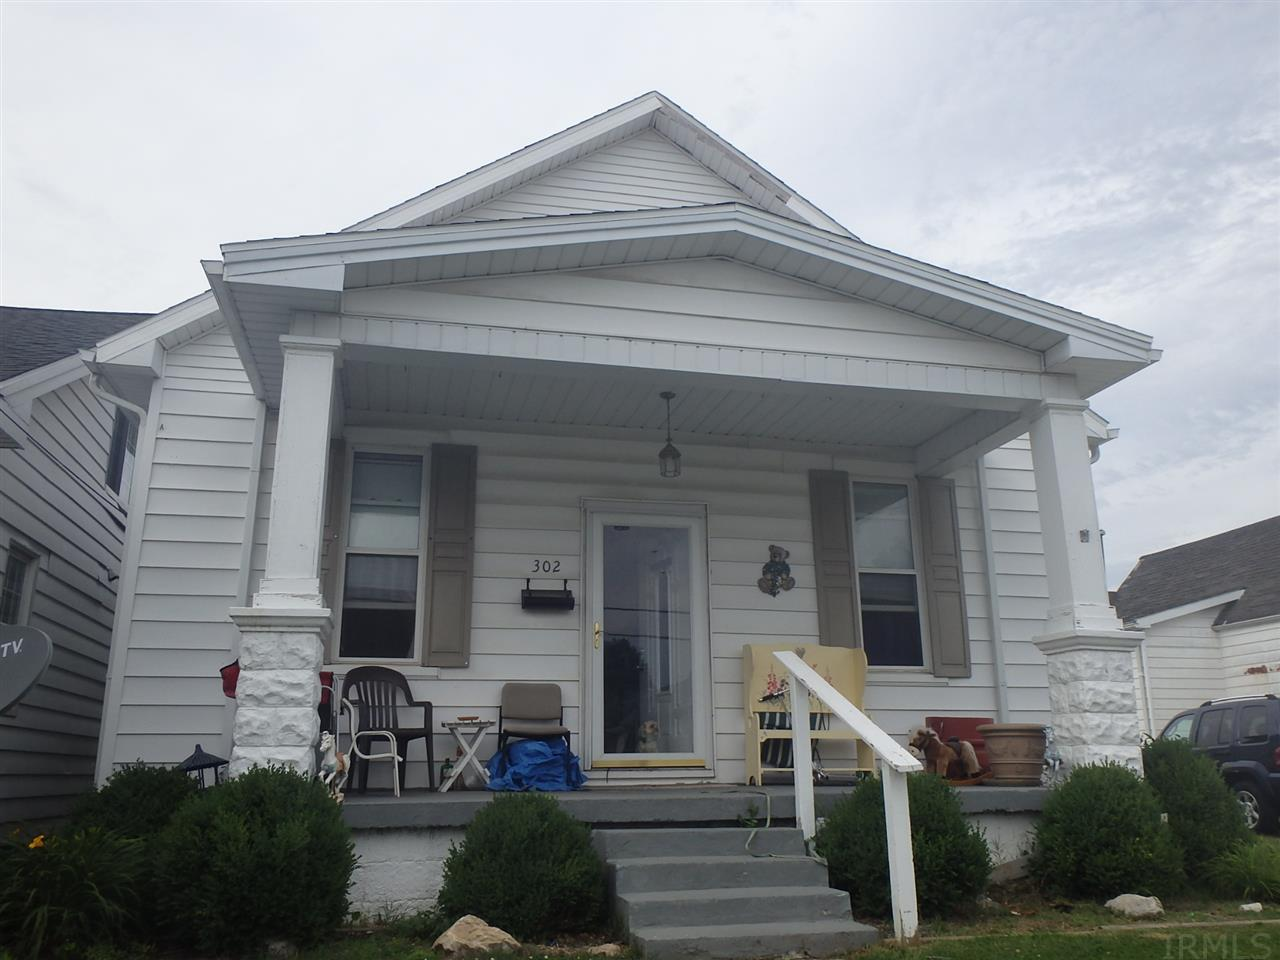 302 RICHARDT, Evansville, IN 47711